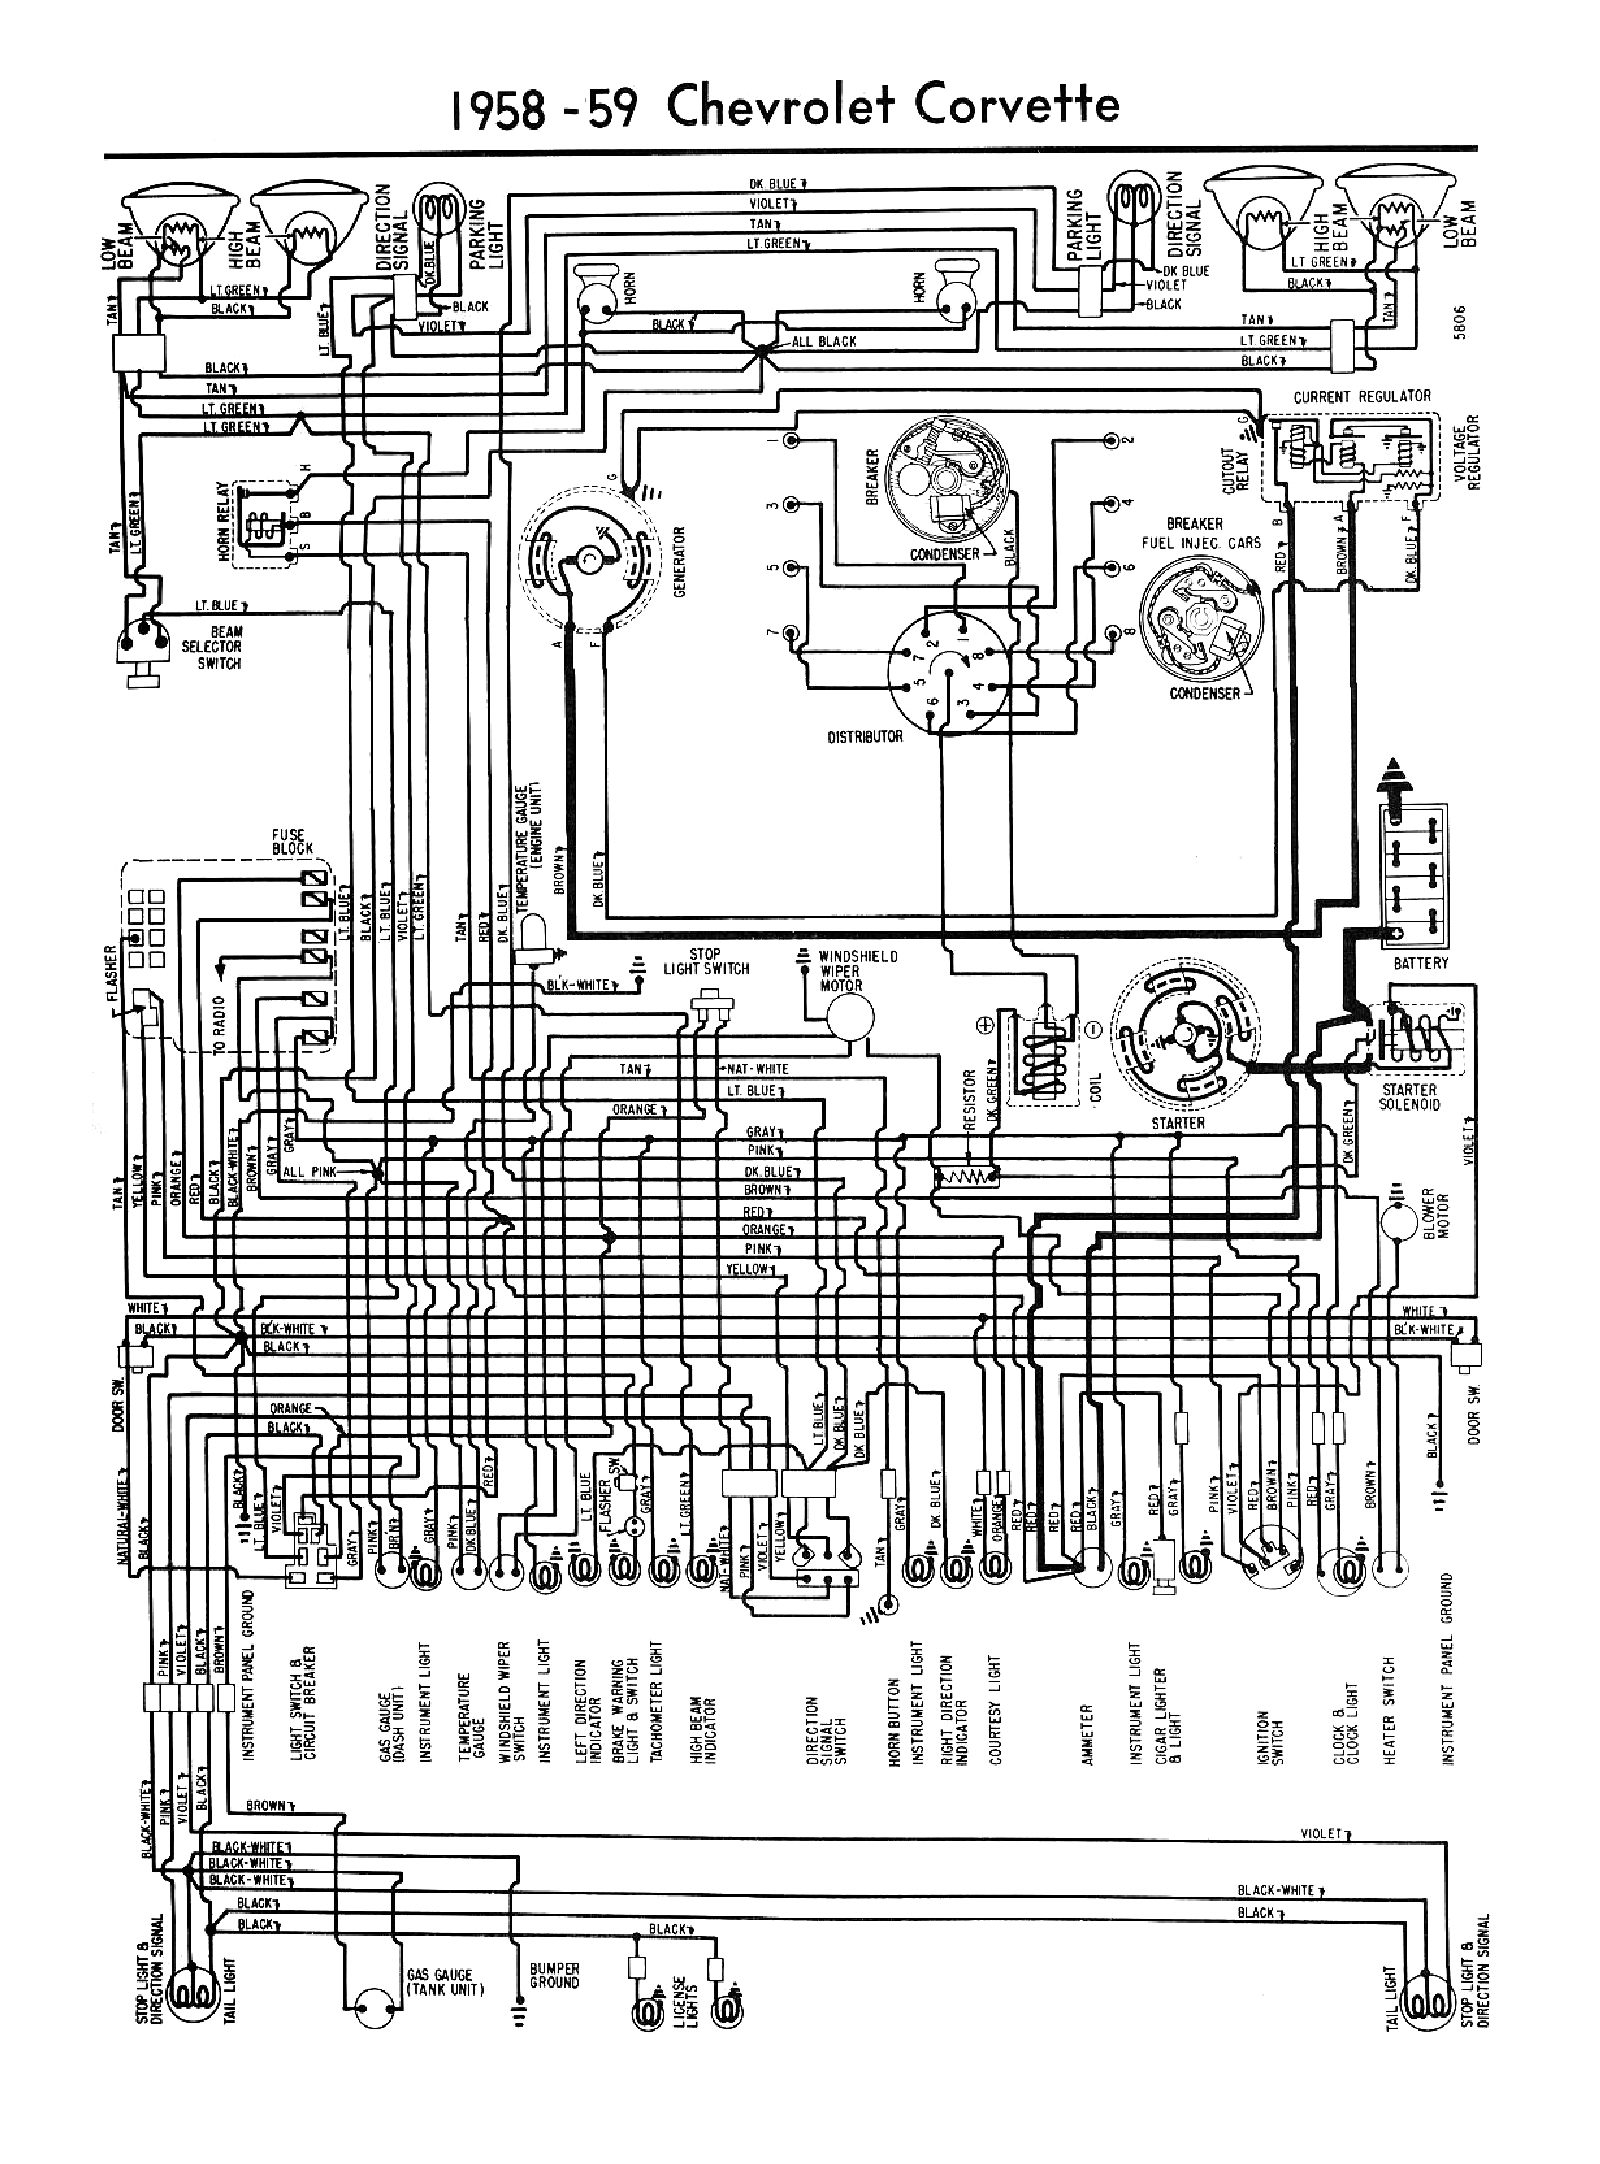 1960 Pontiac Wiring Diagram Everything About Fuse For Grand Prix Schematic Library Rh 39 Codingcommunity De Starter Radio